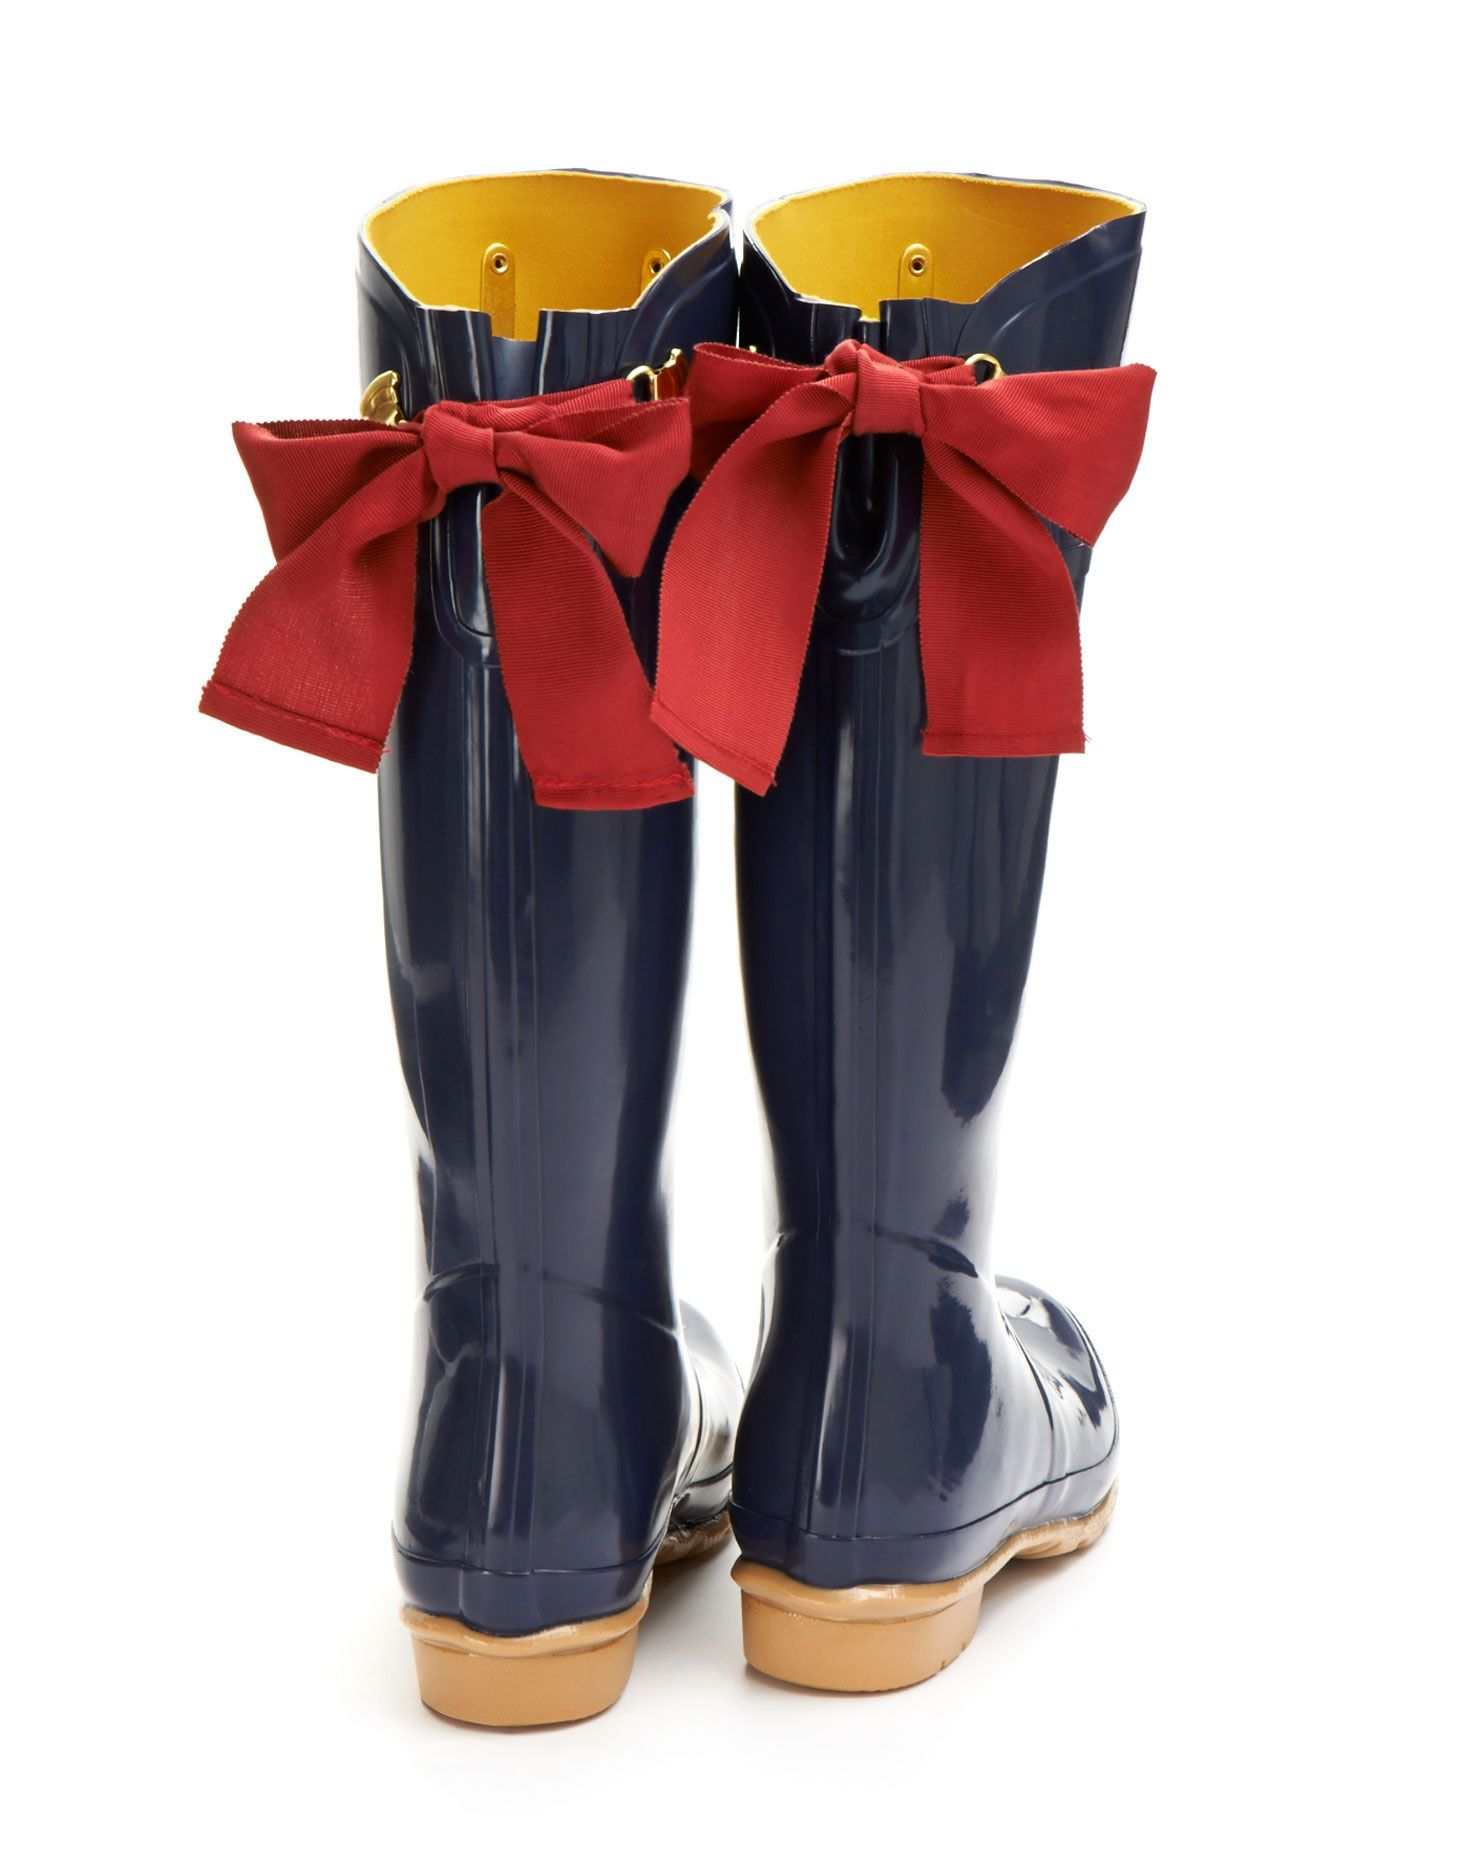 1000  images about rain boots on Pinterest | Knee highs, Hunter ...